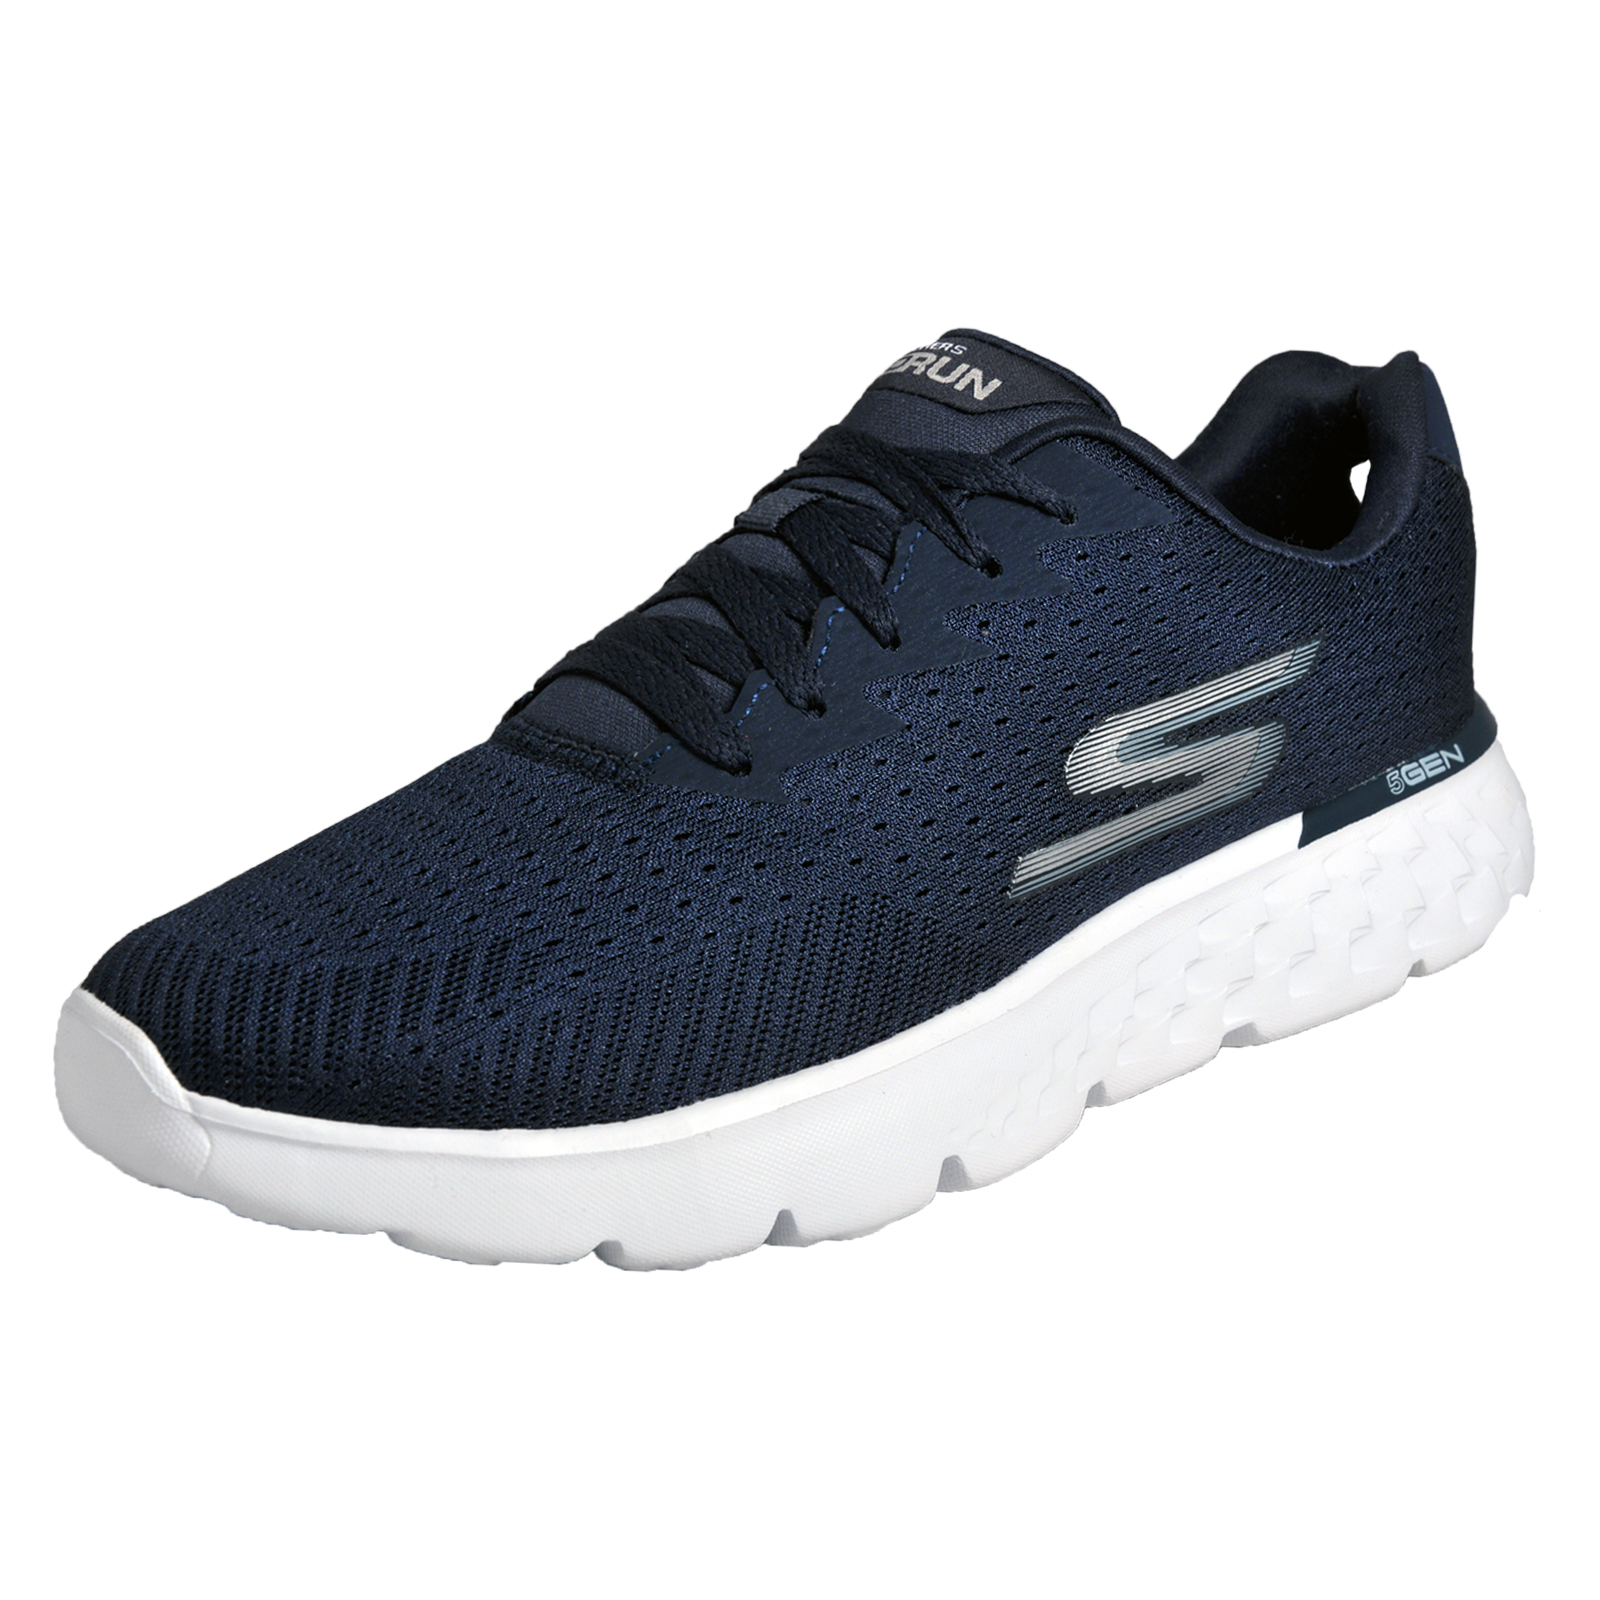 skechers go run 400. skechers go run 400 generate mens fitness gym running shoes trainers navy t